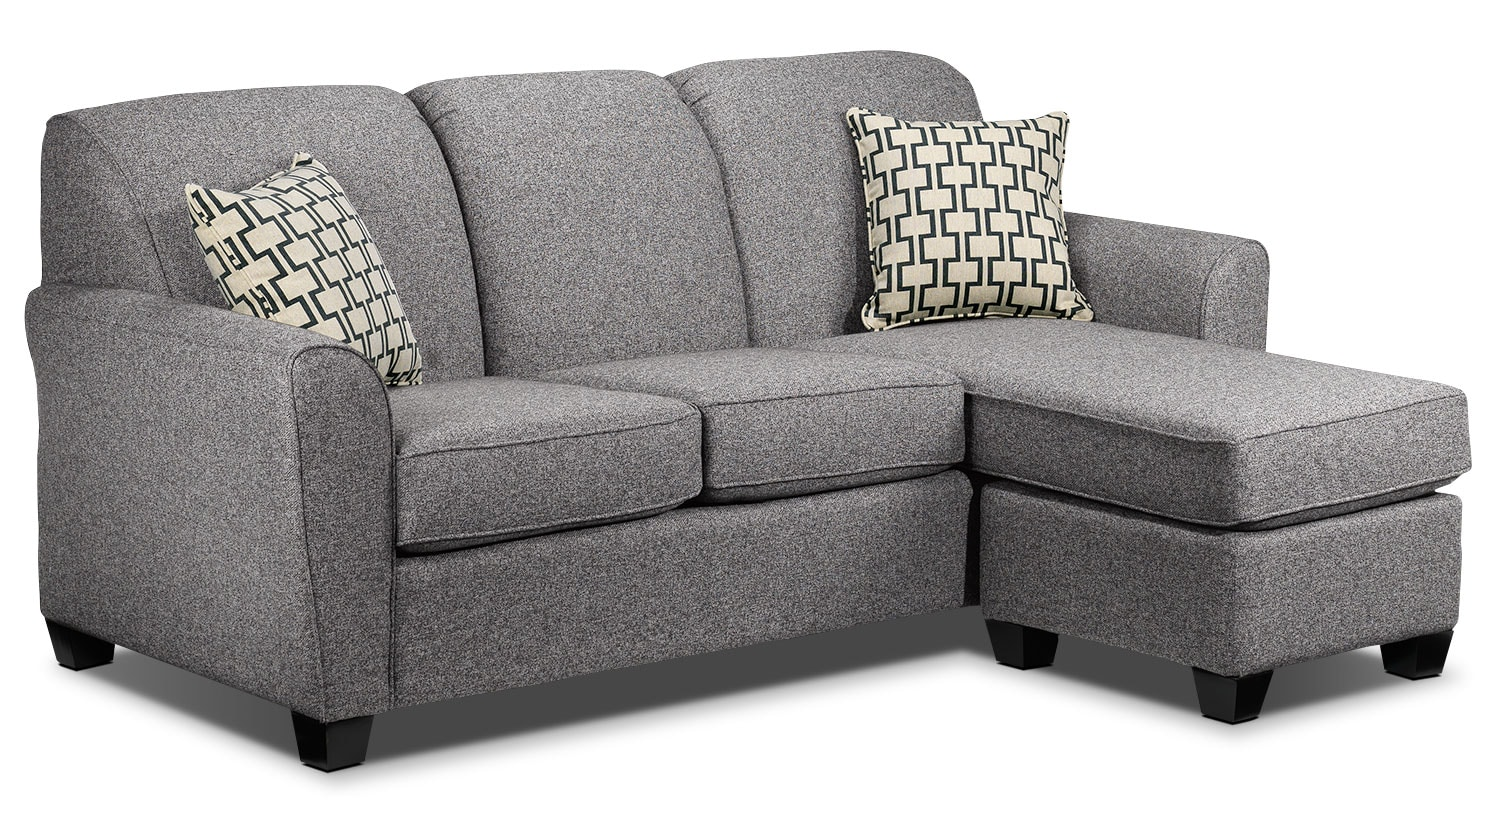 Living Room Furniture - Ashby Chaise Sofa - Oreo